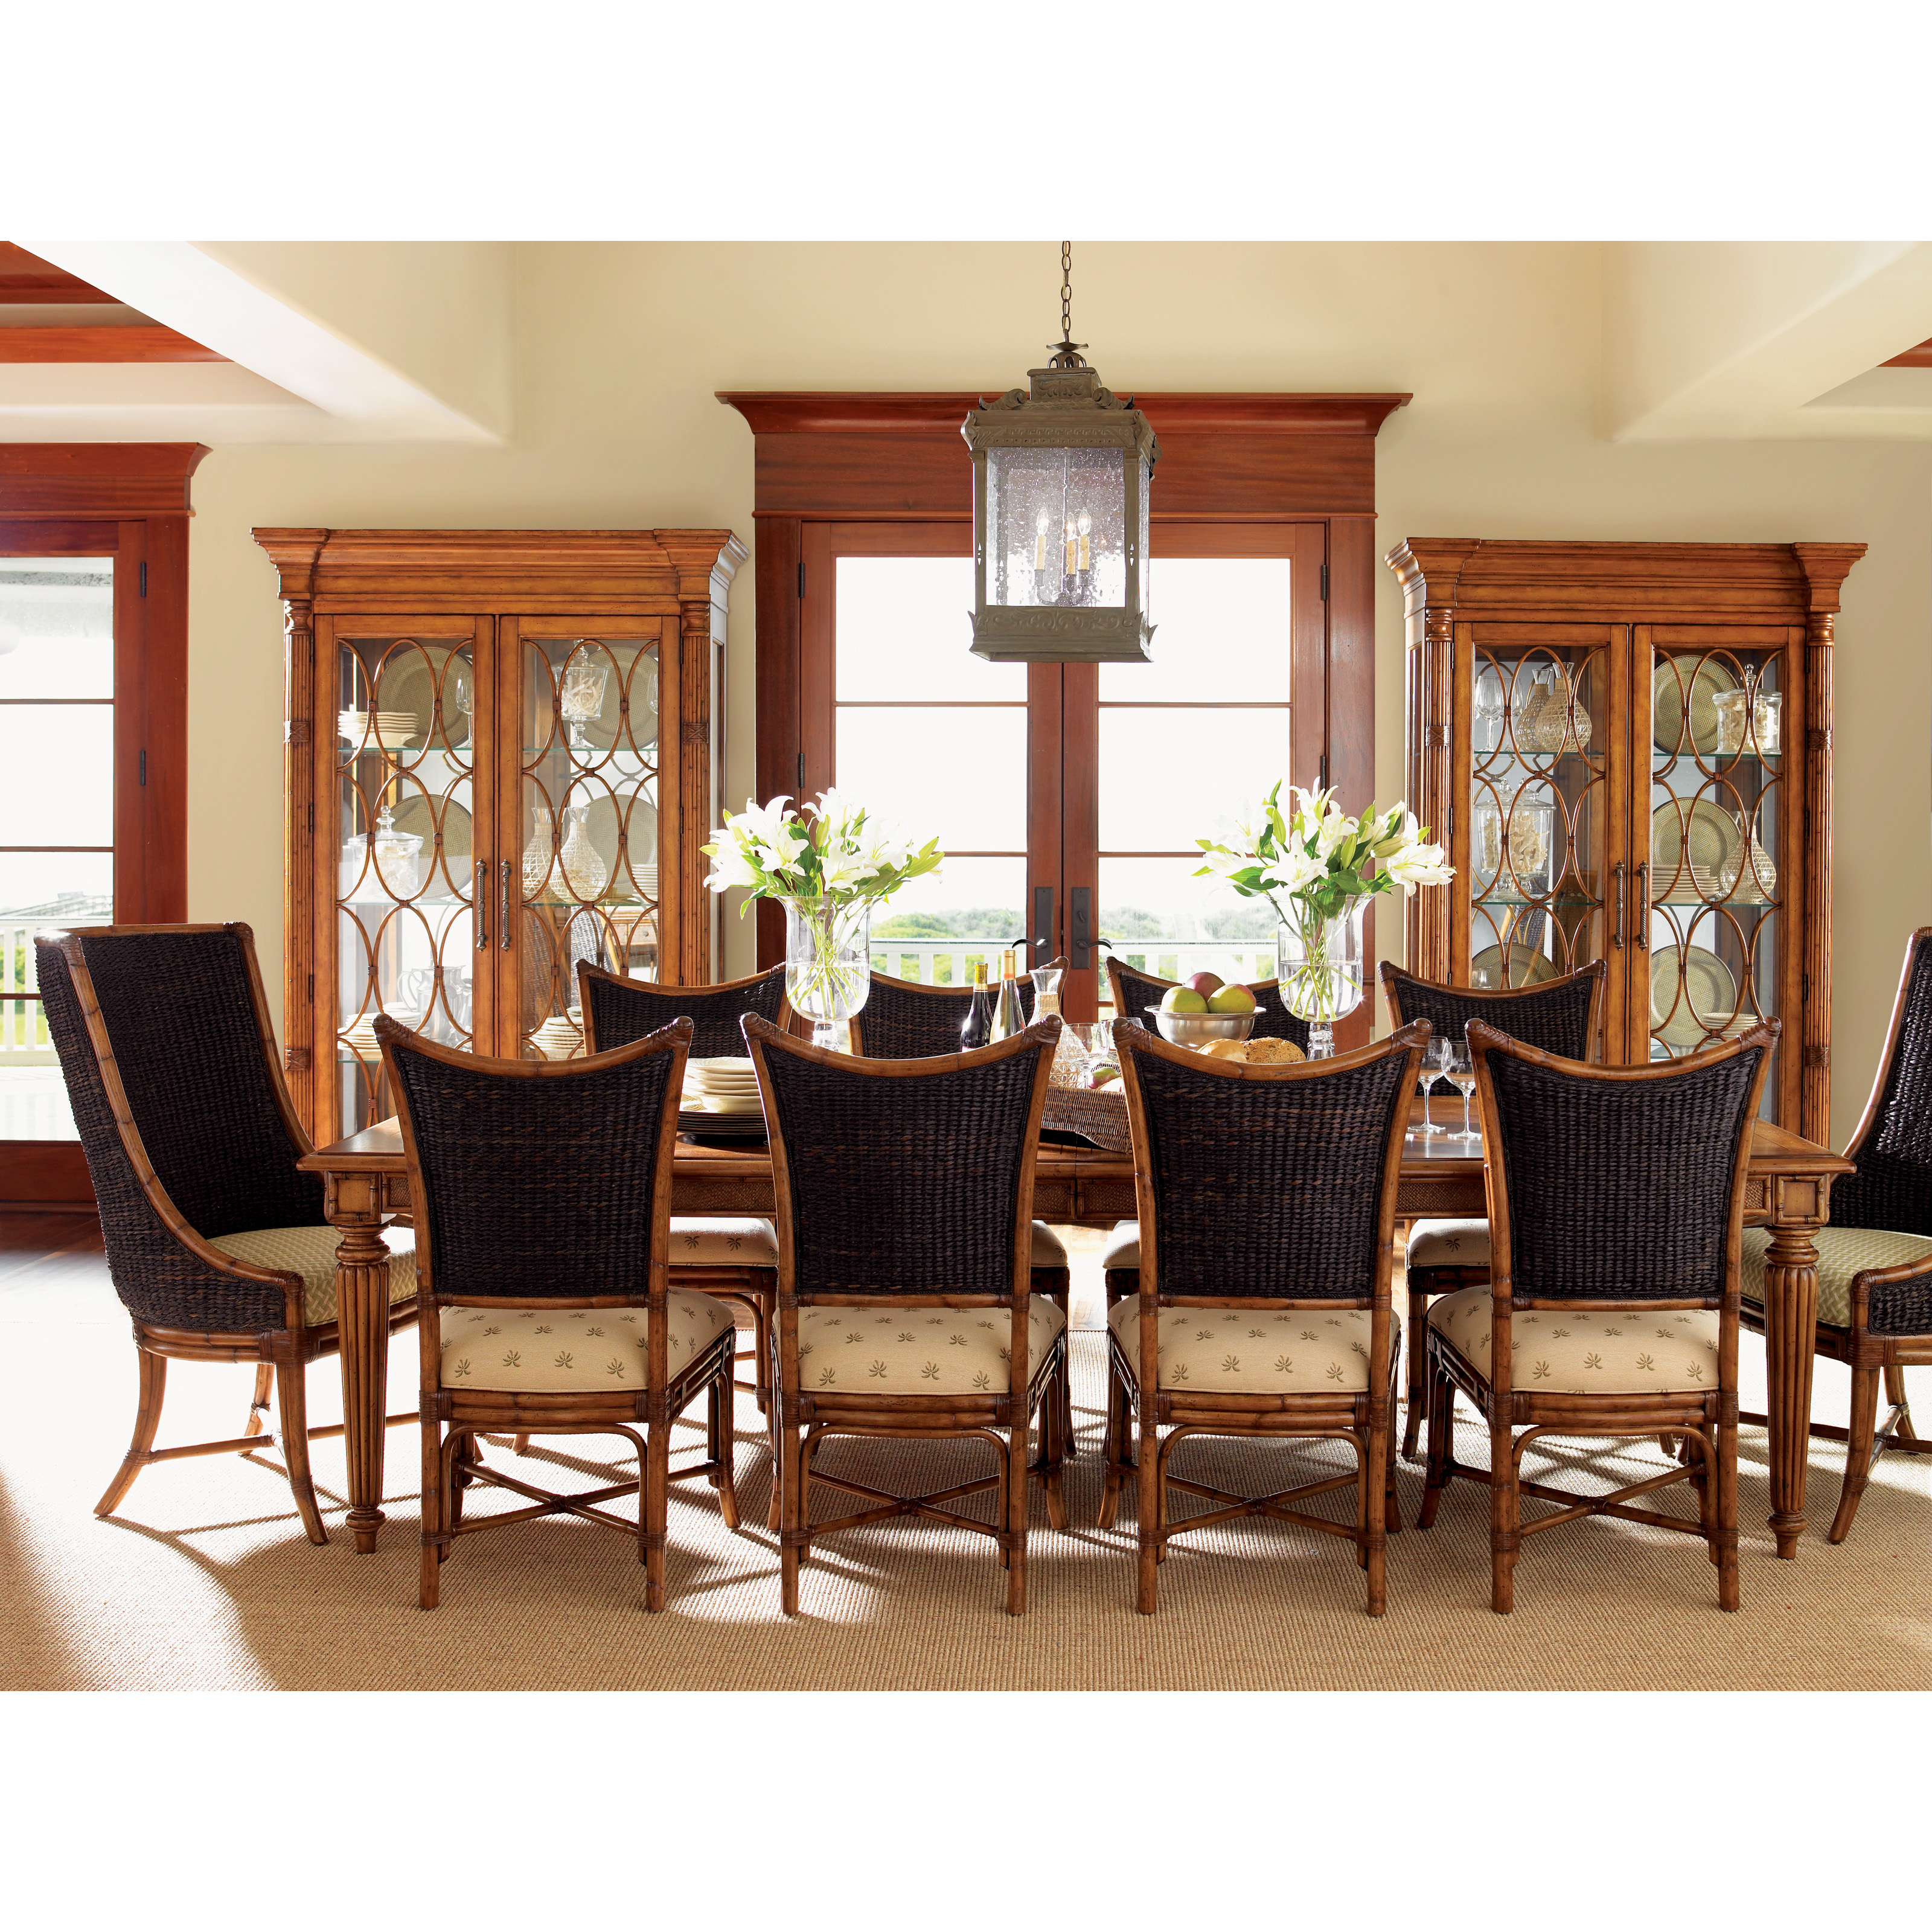 QUICK VIEW. Tommy Bahama Island Estate 11 Piece Dining Set With Mangrove U0026  Cruz Host Chairs. $9,989.00 Part 11